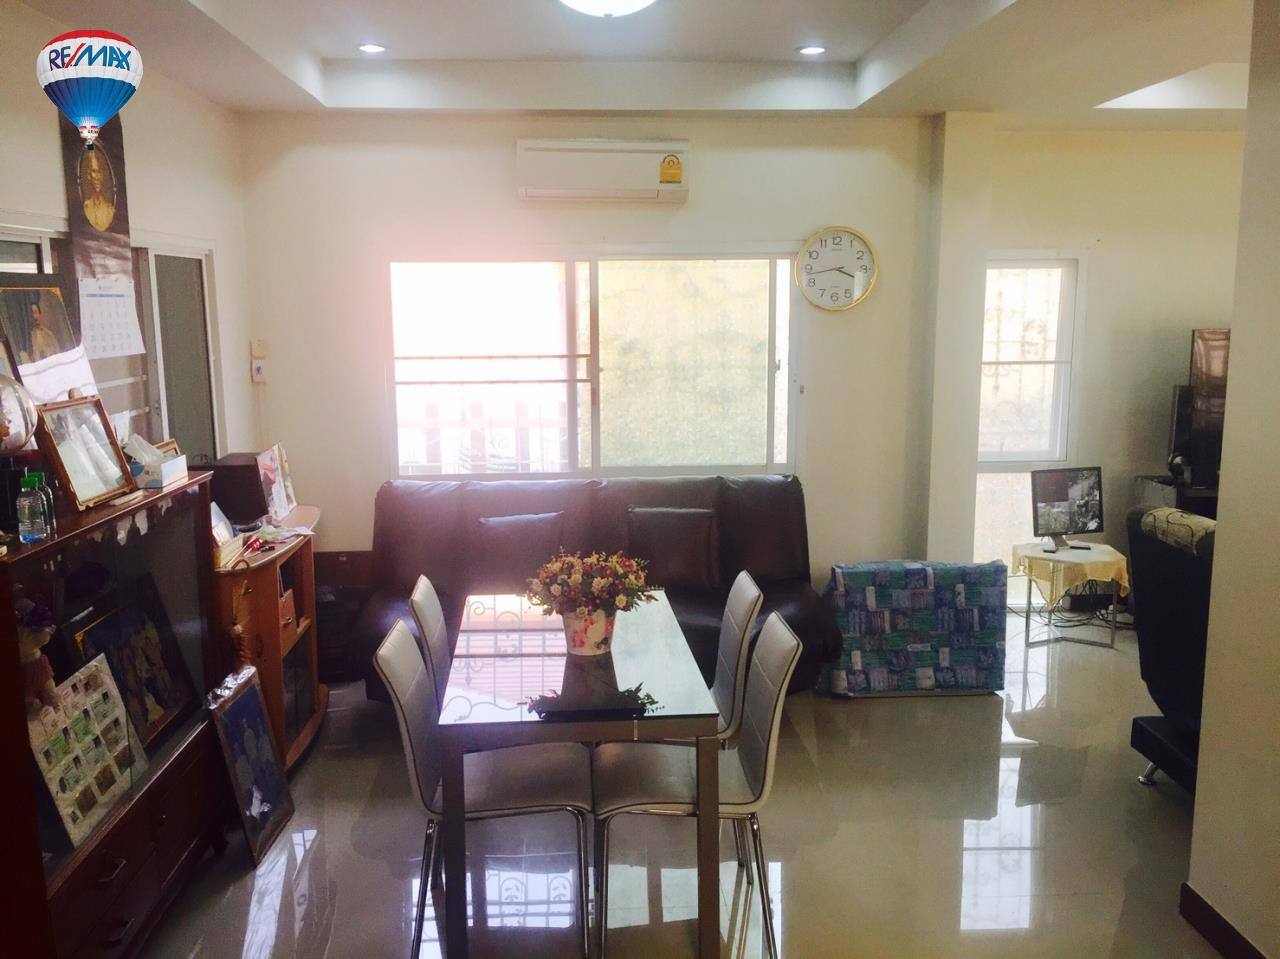 RE/MAX Classic Agency's house for sale near Pattaya Noi Chiangrai  15